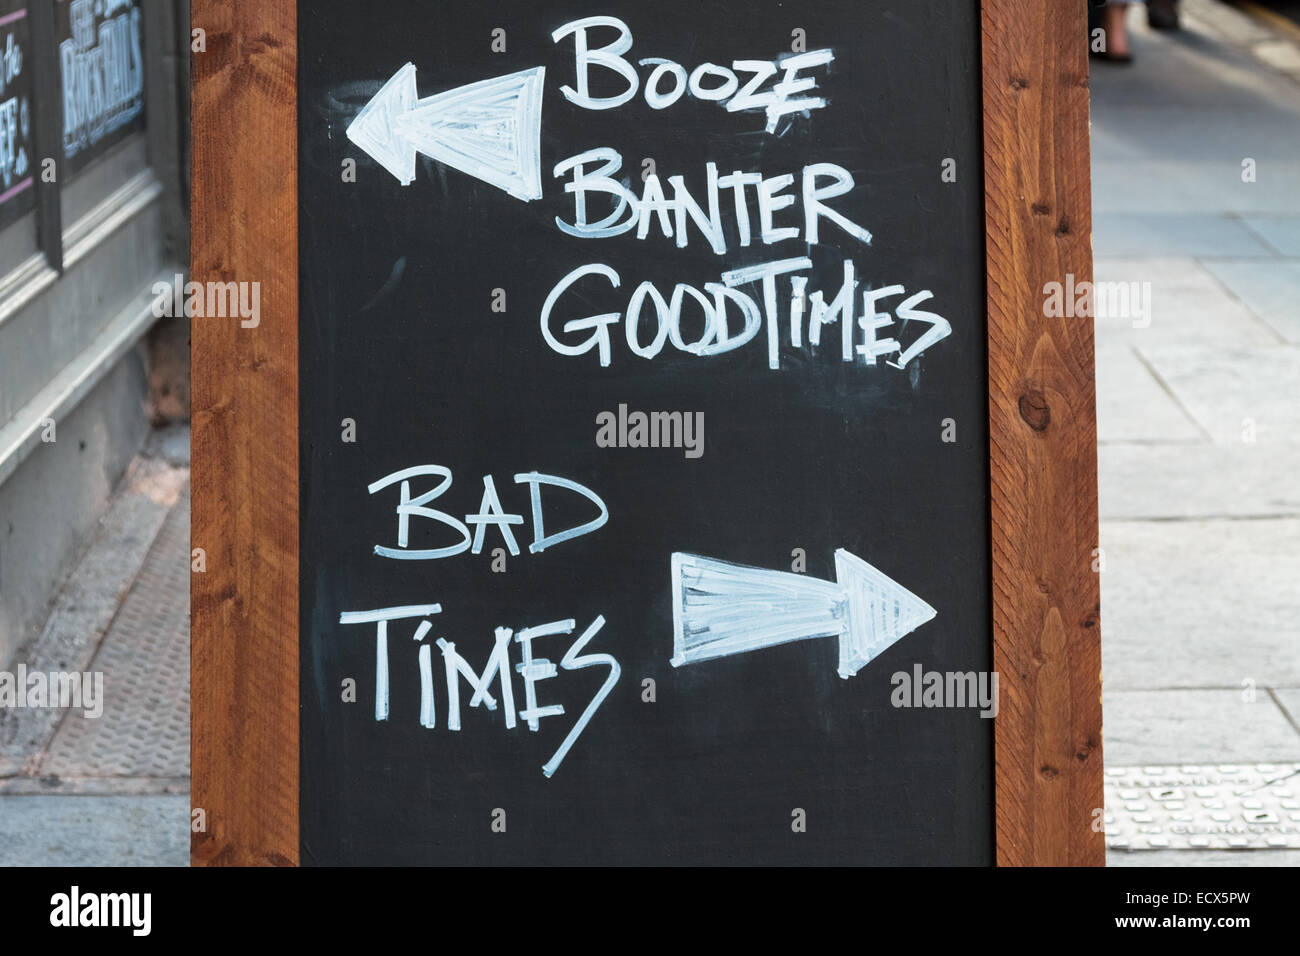 Chalk board in front of a pub with good times versus bad times - Stock Image